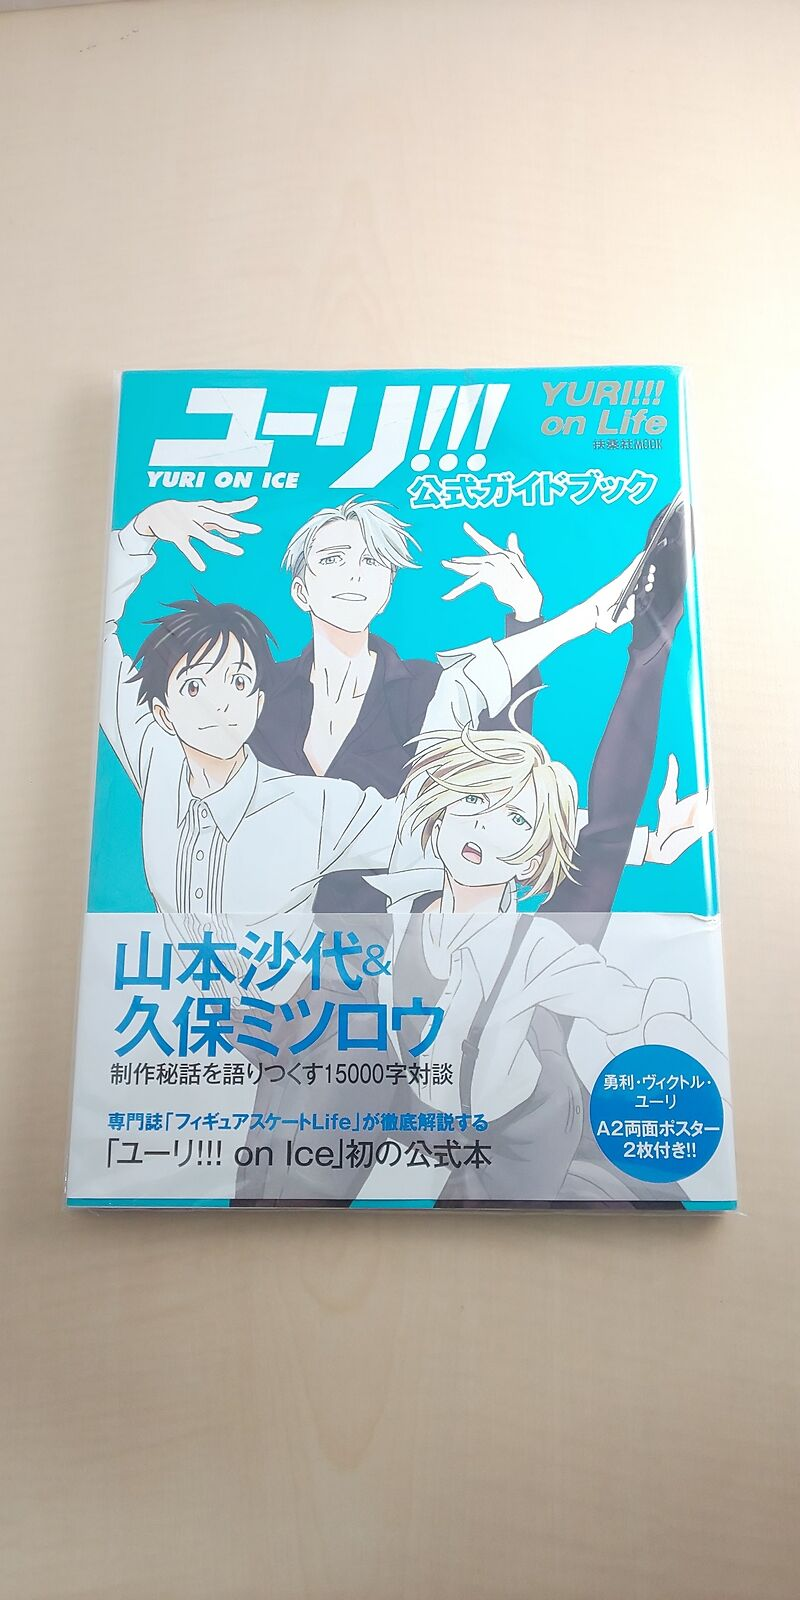 Yuri On Ice Life Official Guide Book Japanese Figure Skating Winter Olympics For Sale Online Ebay